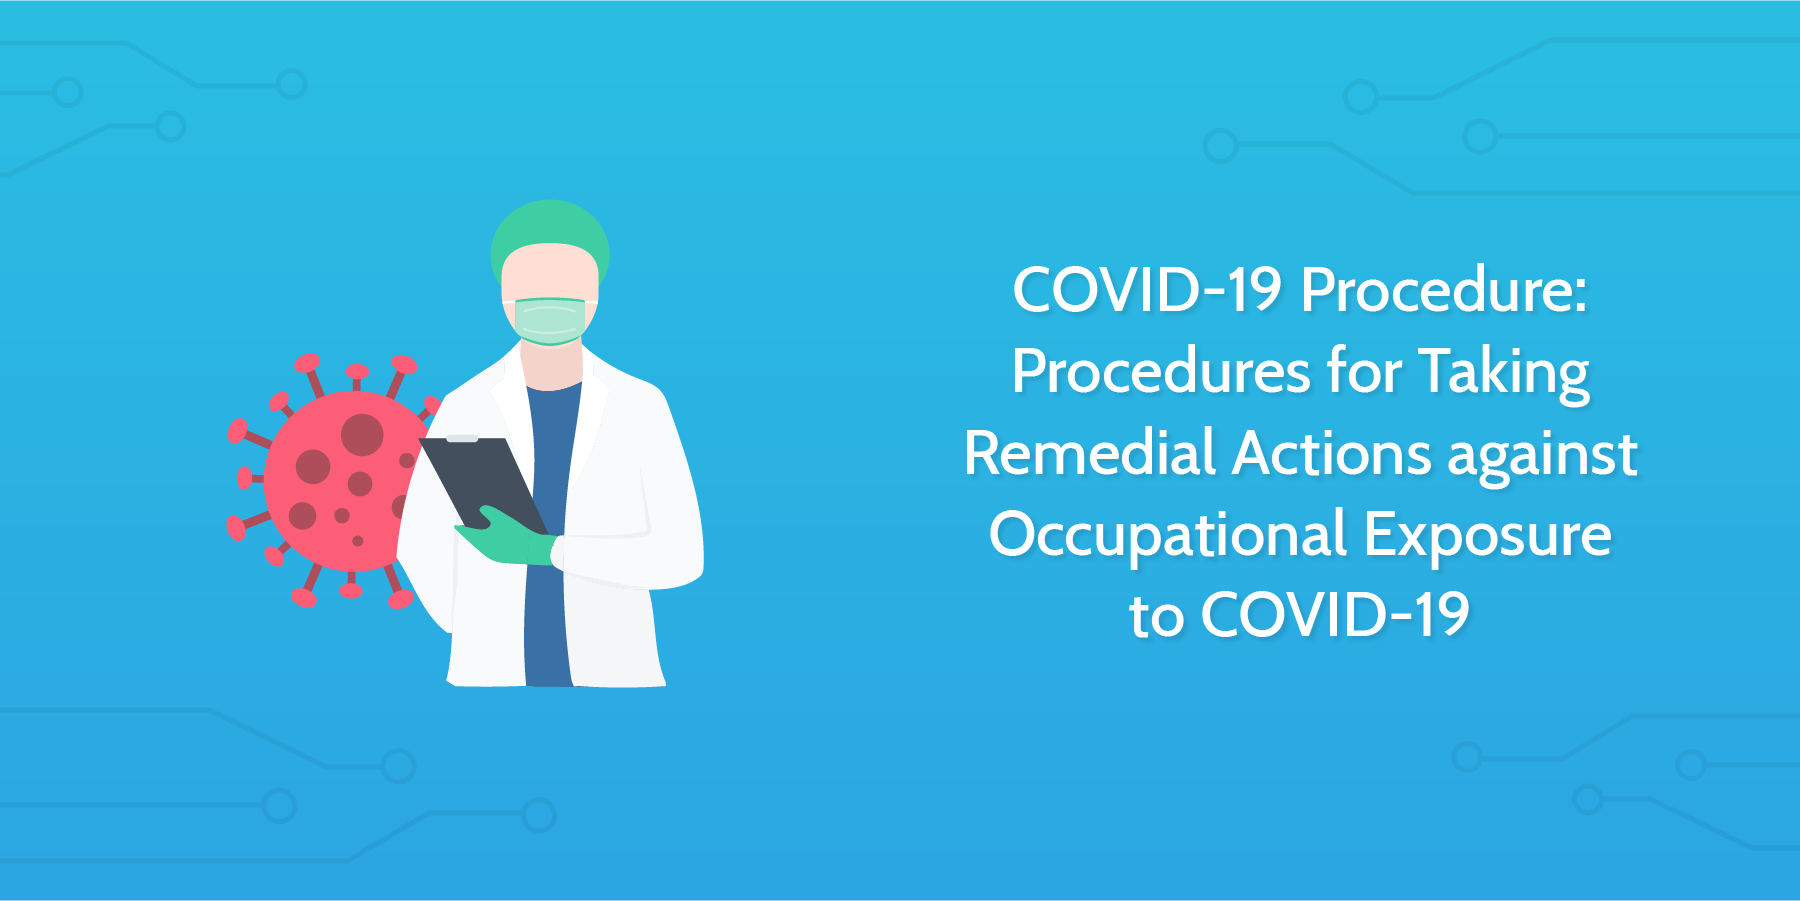 COVID-19 Procedure: Procedures for Taking Remedial Actions against Occupational Exposure to COVID-19